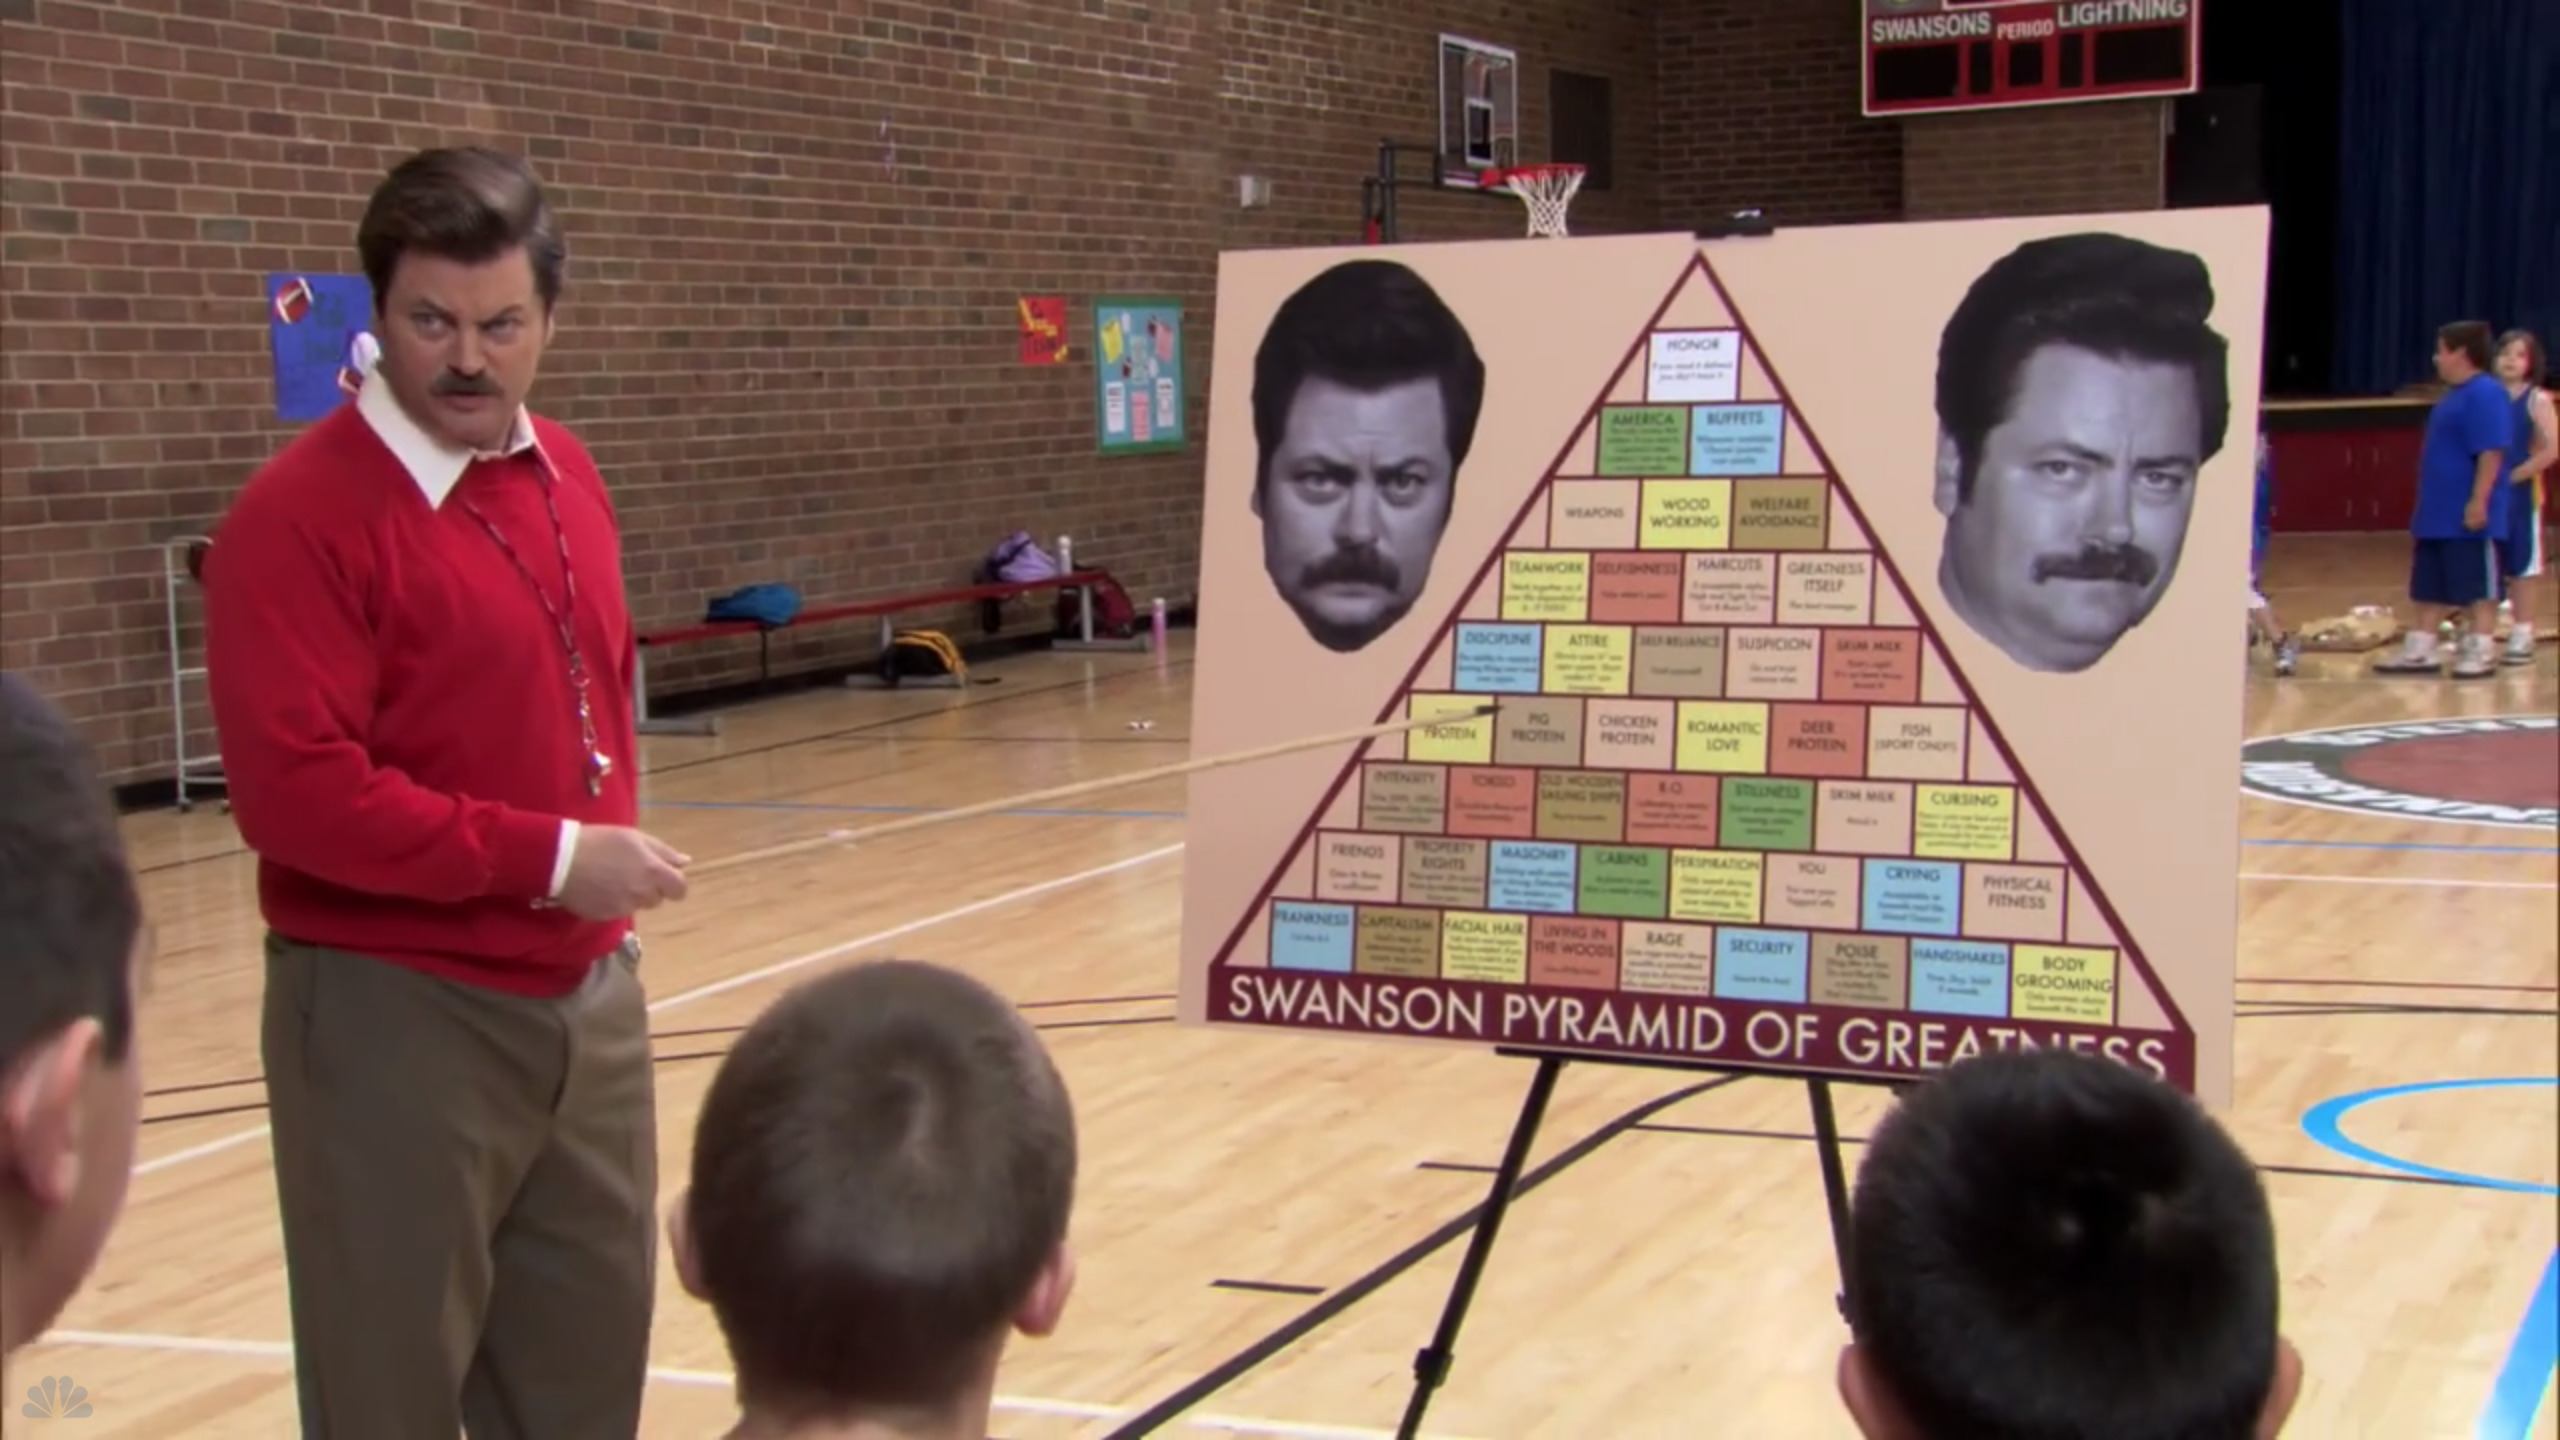 photo relating to Ron Swanson Pyramid of Greatness Printable Version titled The Johnson Pyramid Of Programmer Greatness - The Gathered